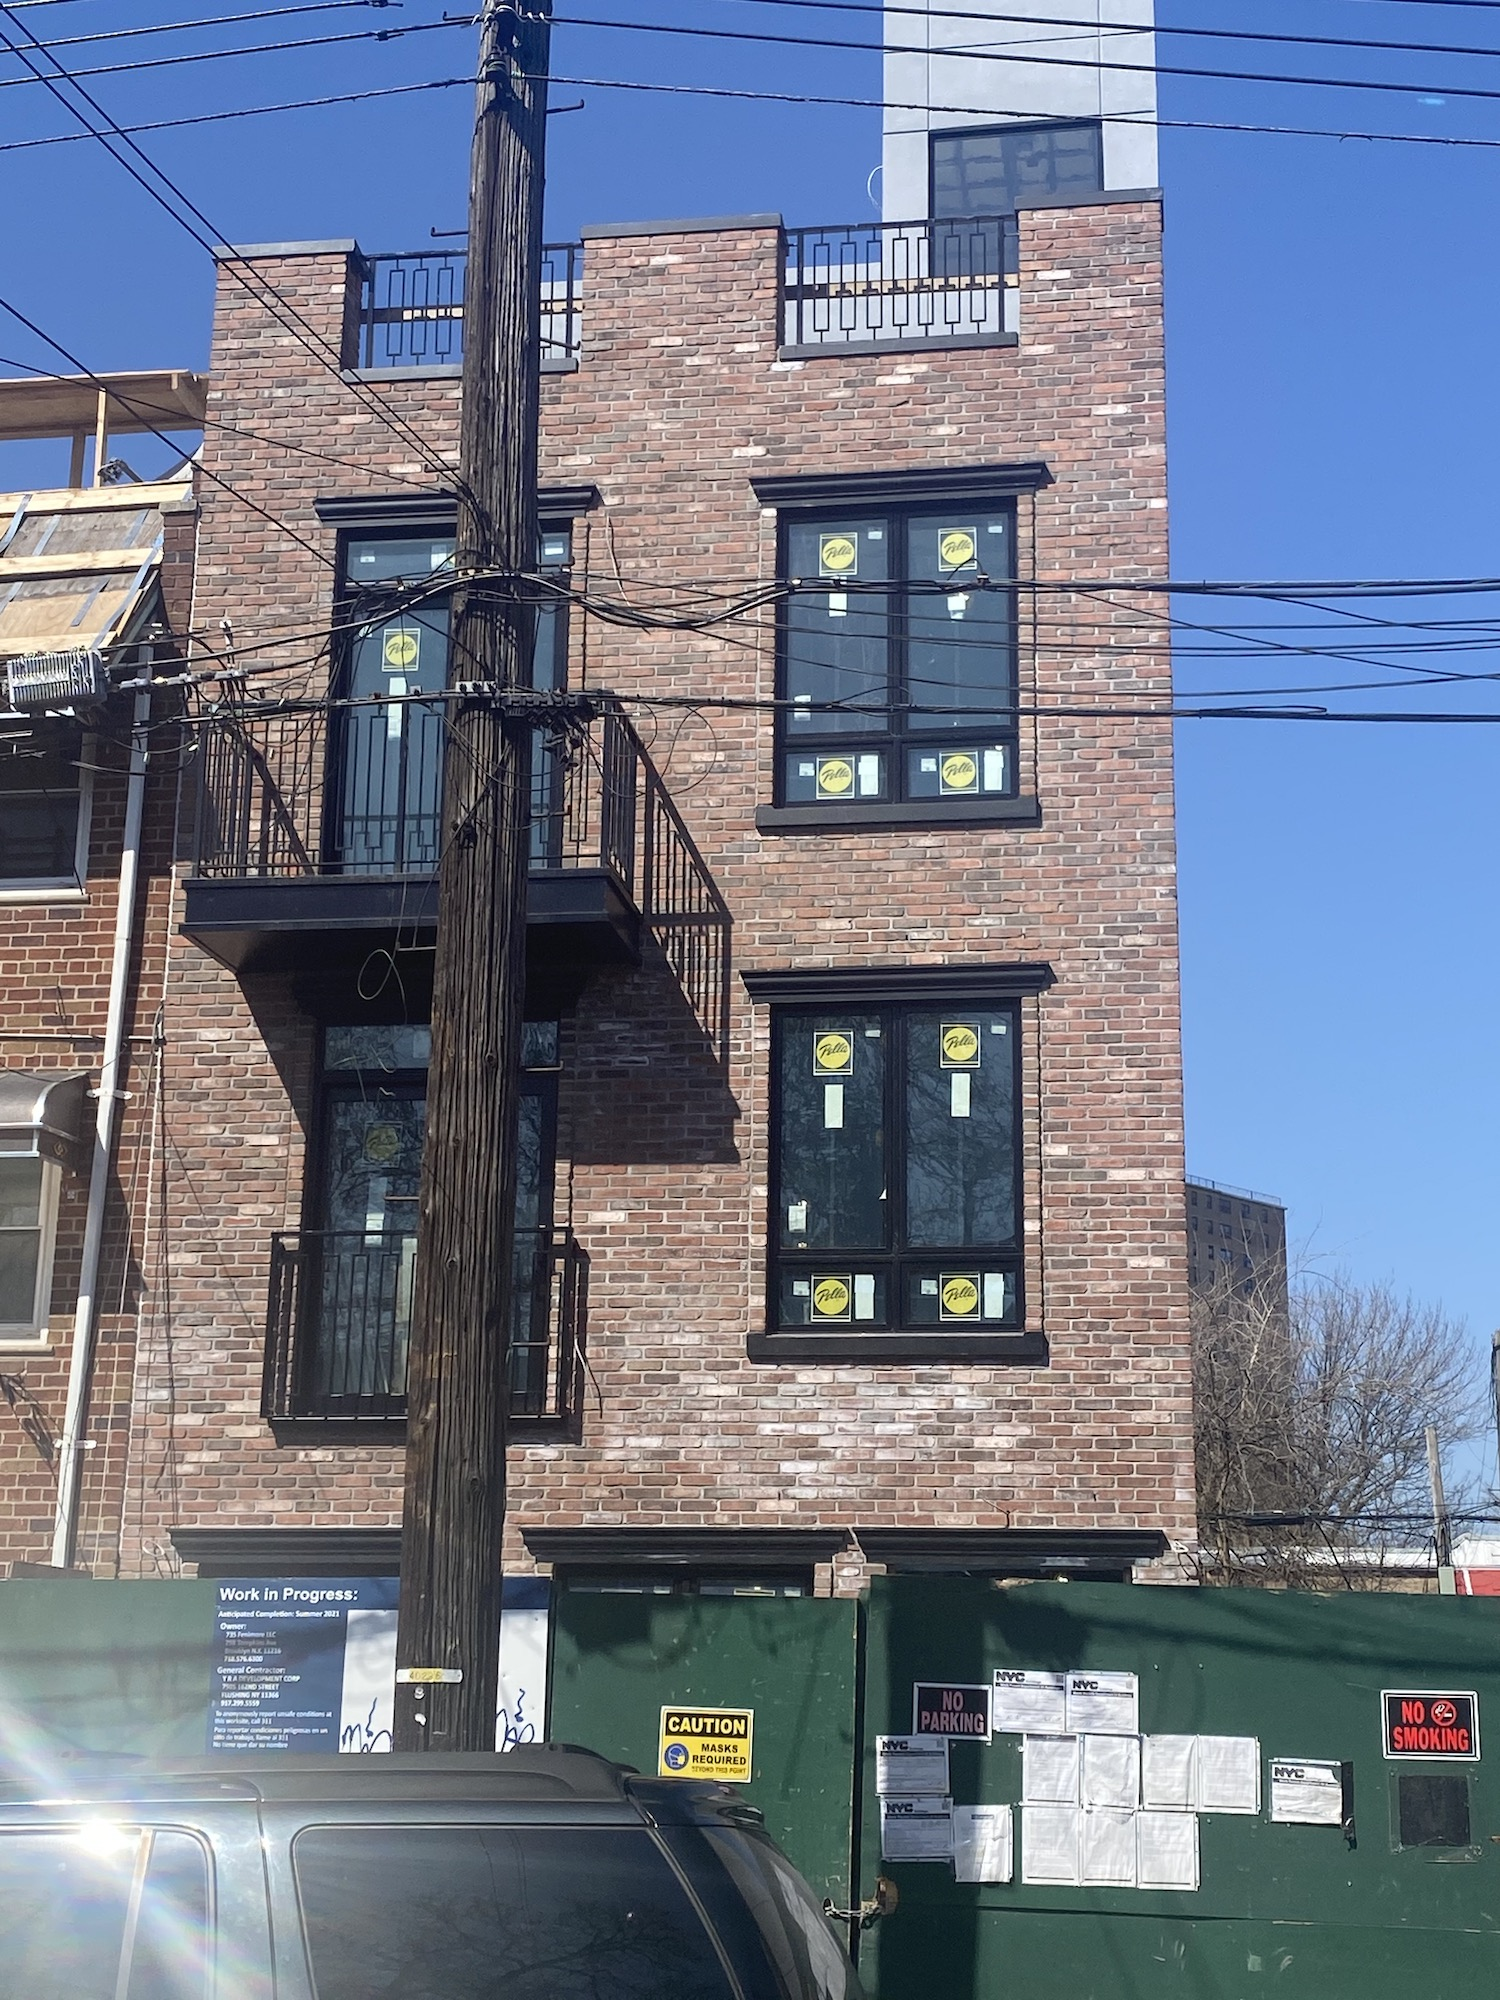 735 Fenimore Street in East Flatbush, Brooklyn. All images courtesy of NYC Housing Connect